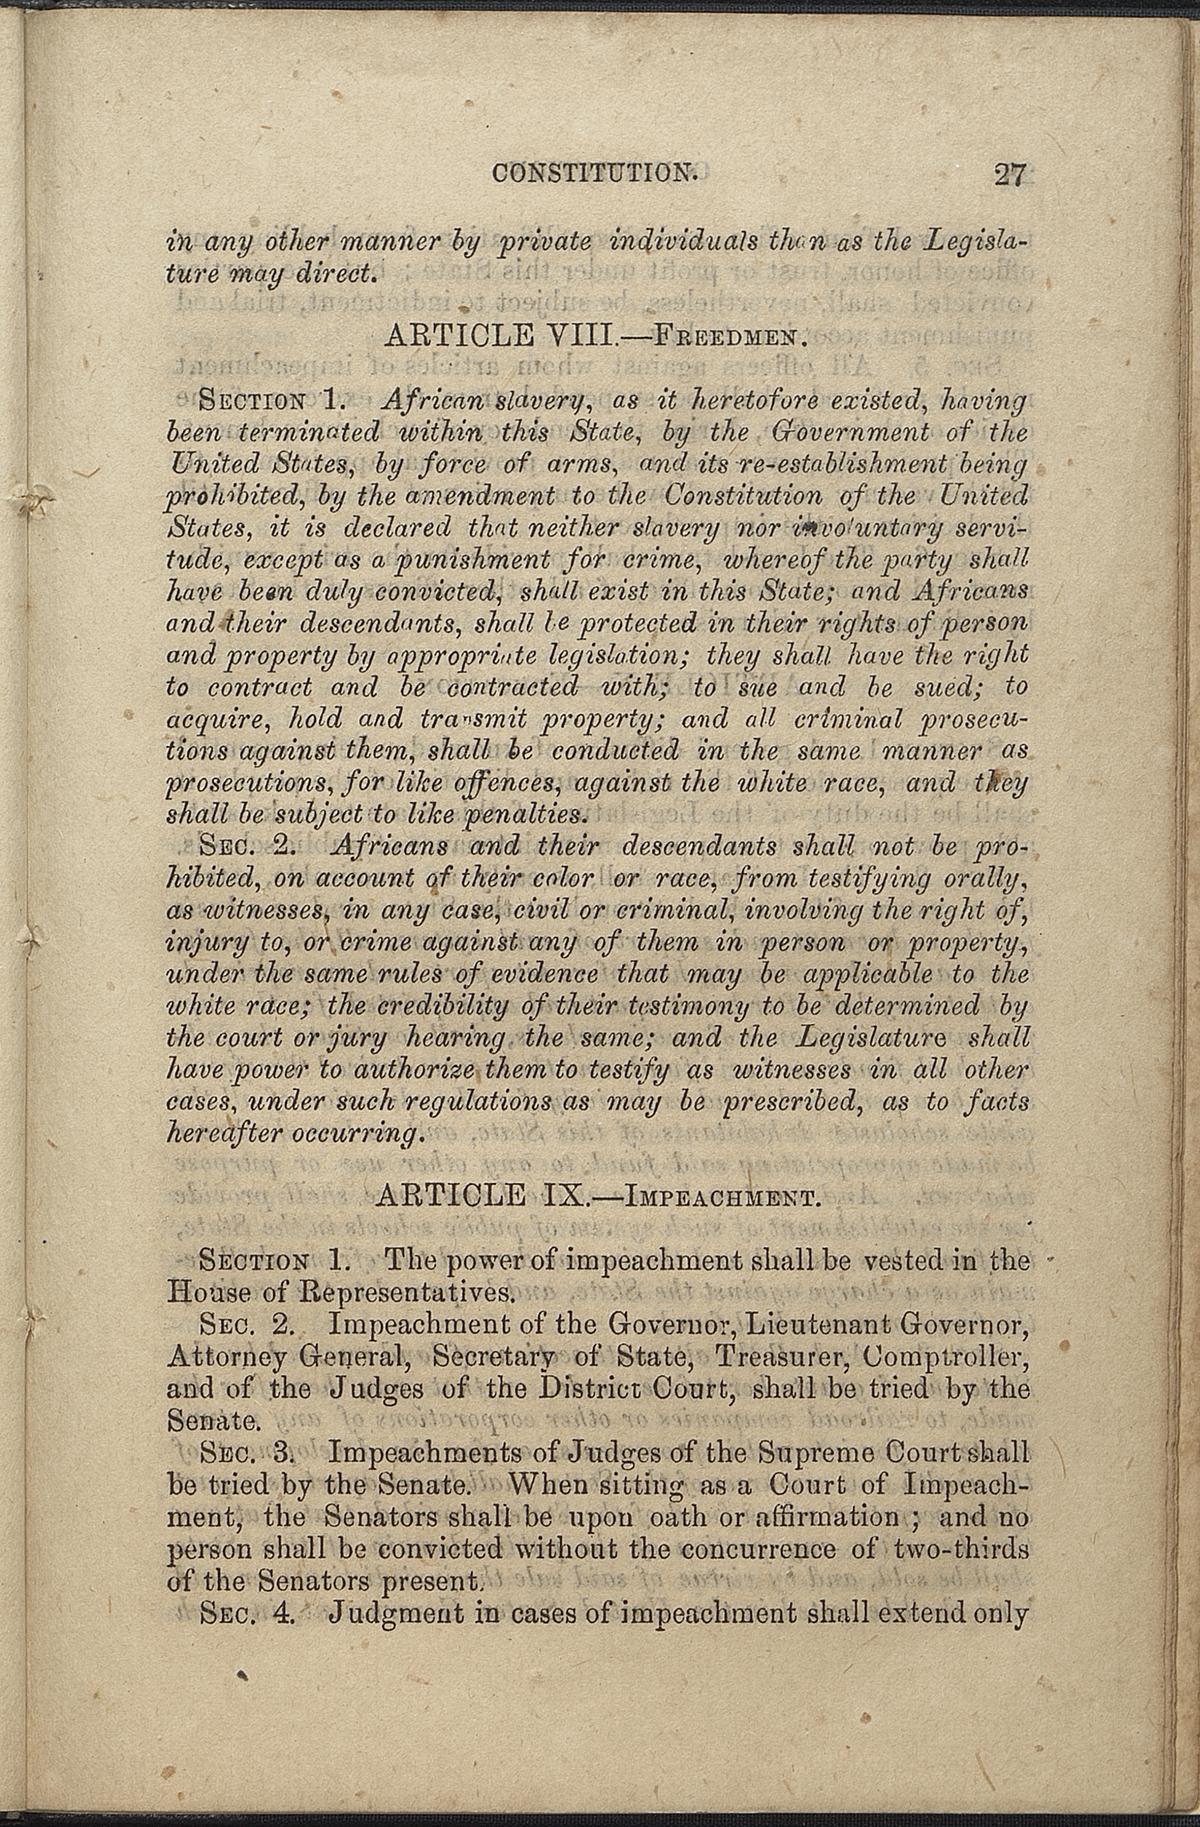 Article VIII, Sections 1-2; Article IX, Sections 1-4